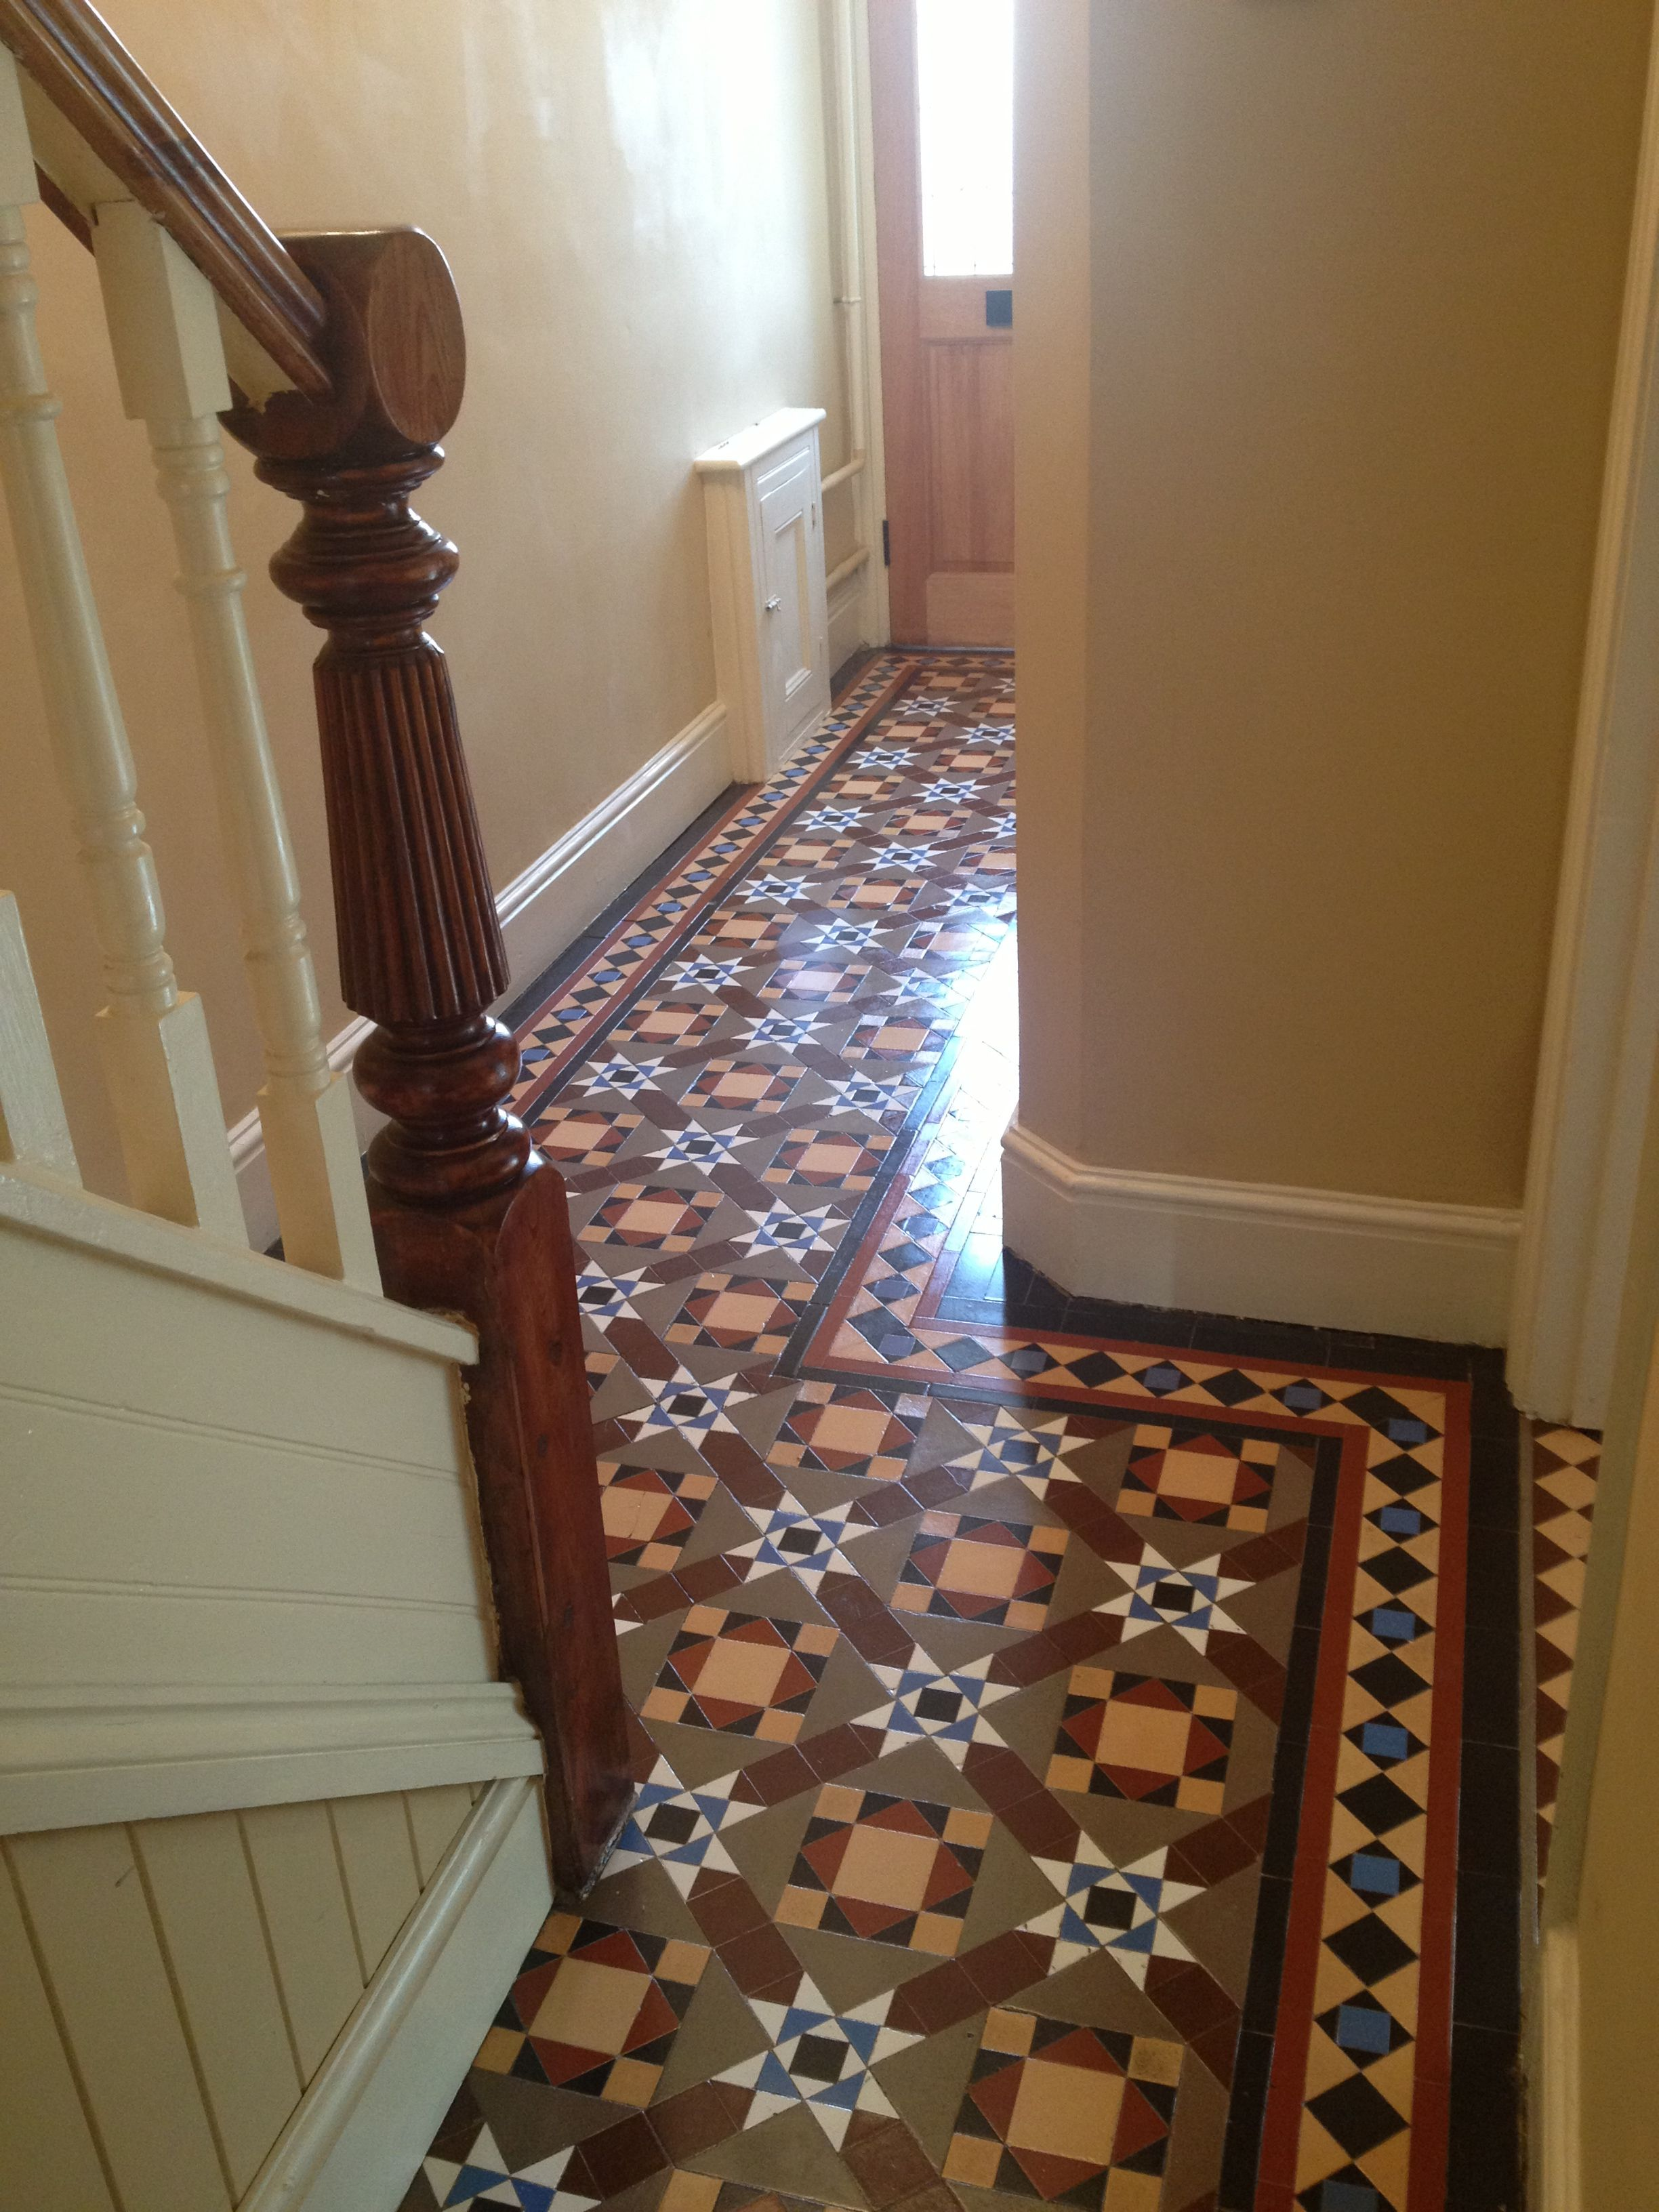 Restored And Polished Victorian Minton Floor Tiles And Bannister